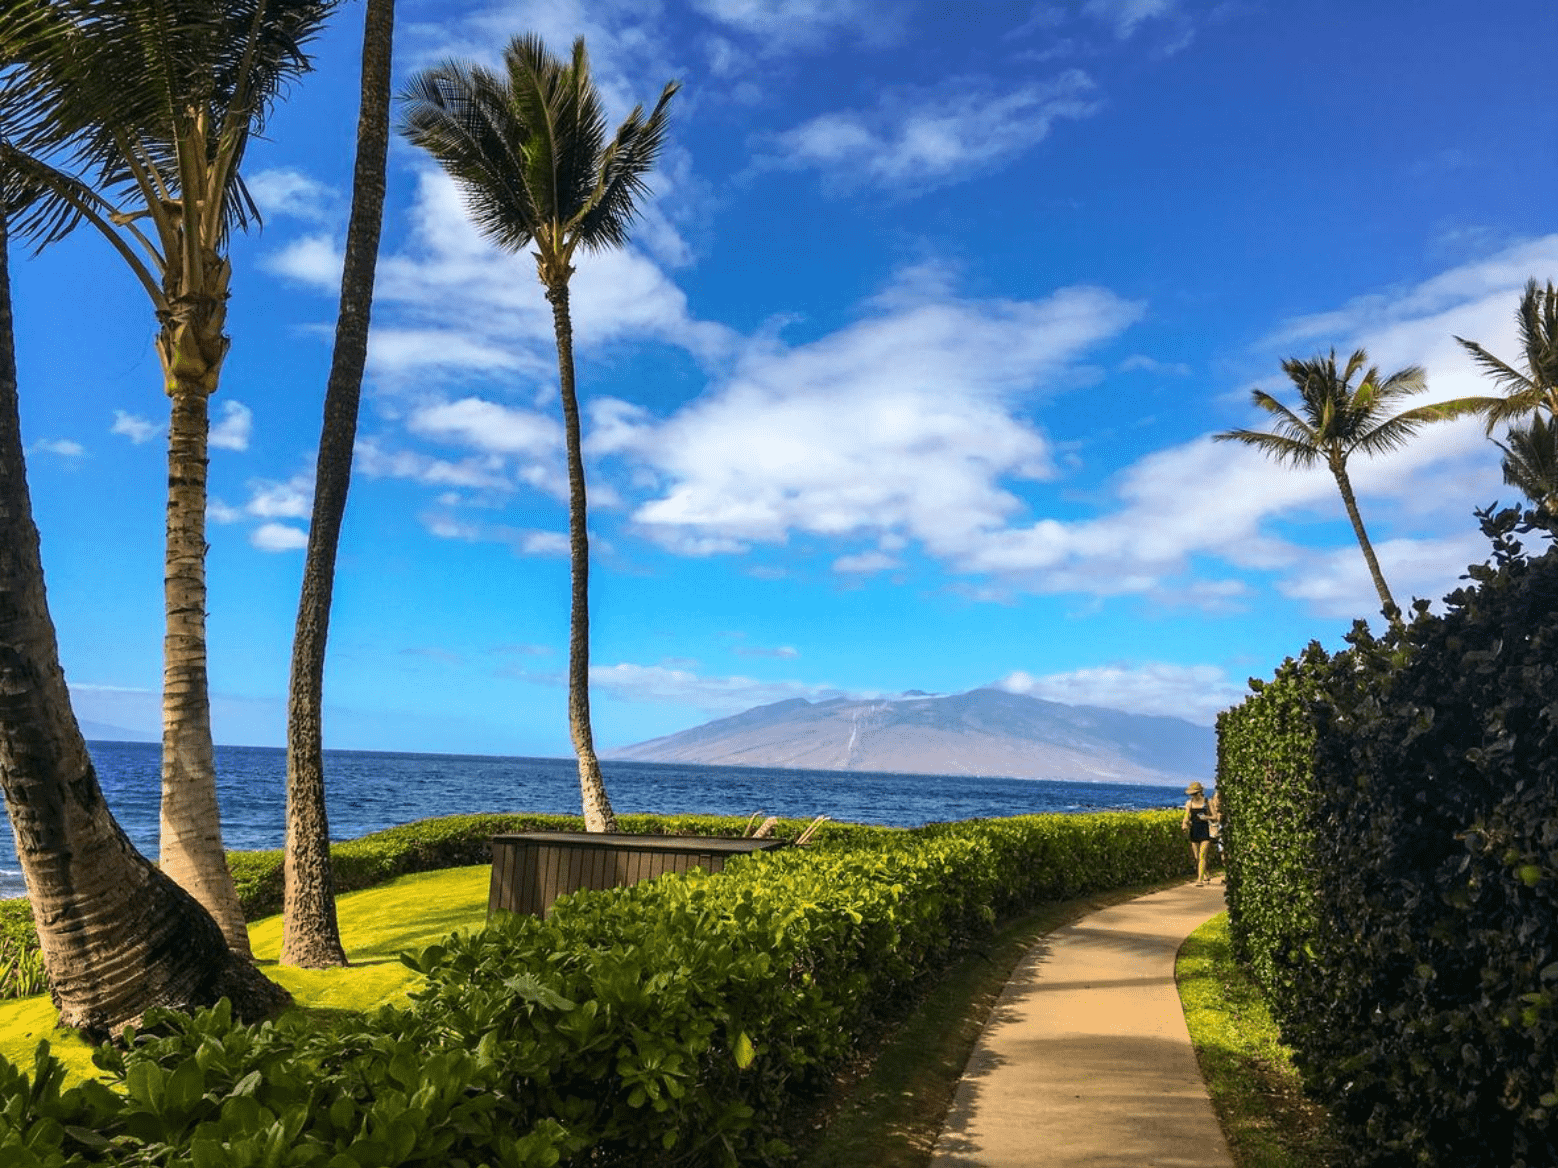 Wailea Beach boardwalk in South Maui, Hawai'i